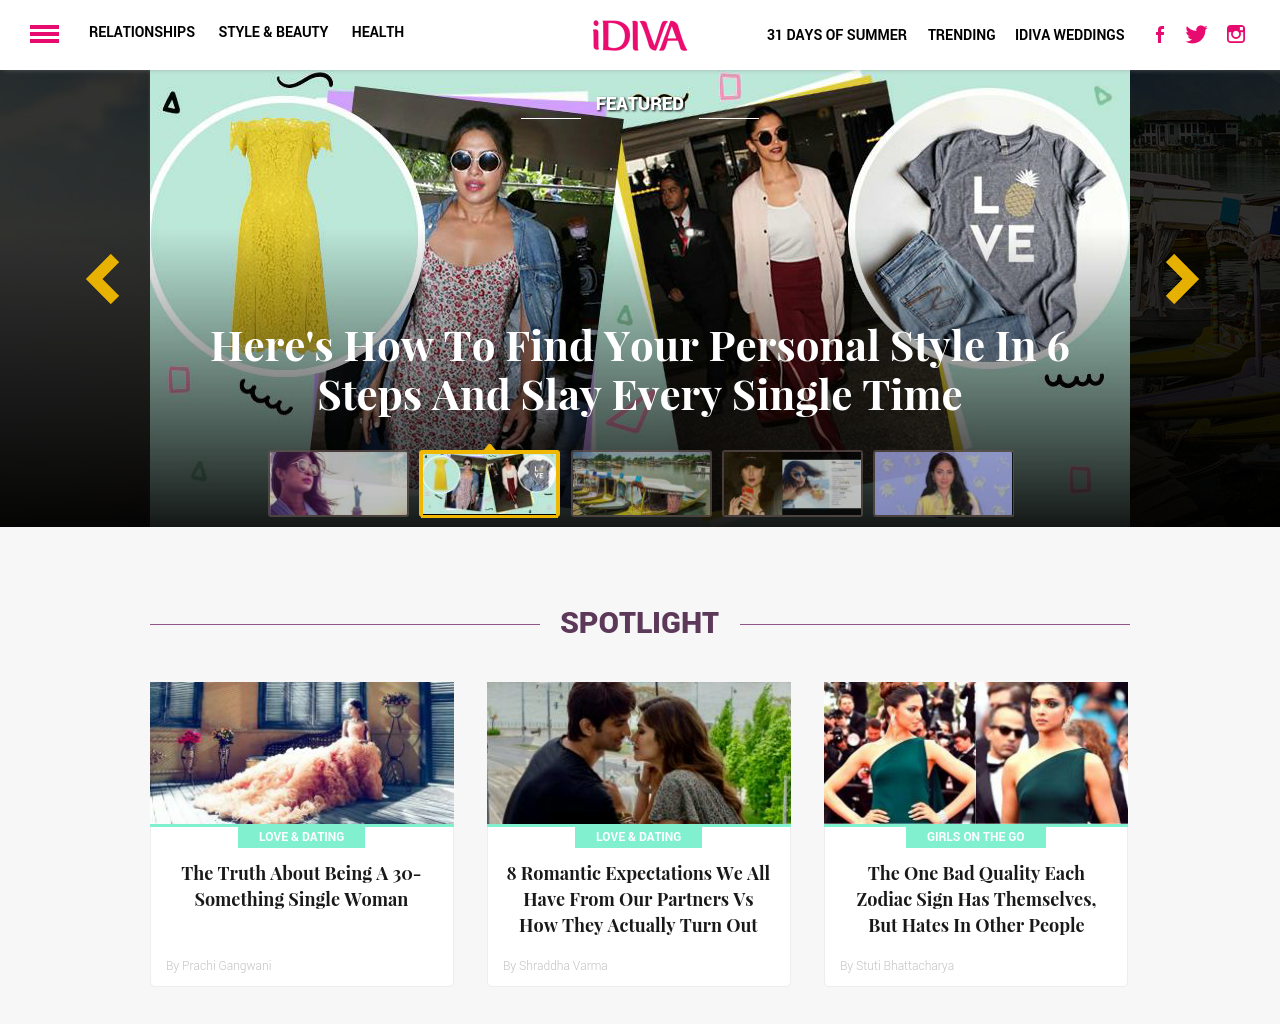 IDiva-Advertising-Reviews-Pricing